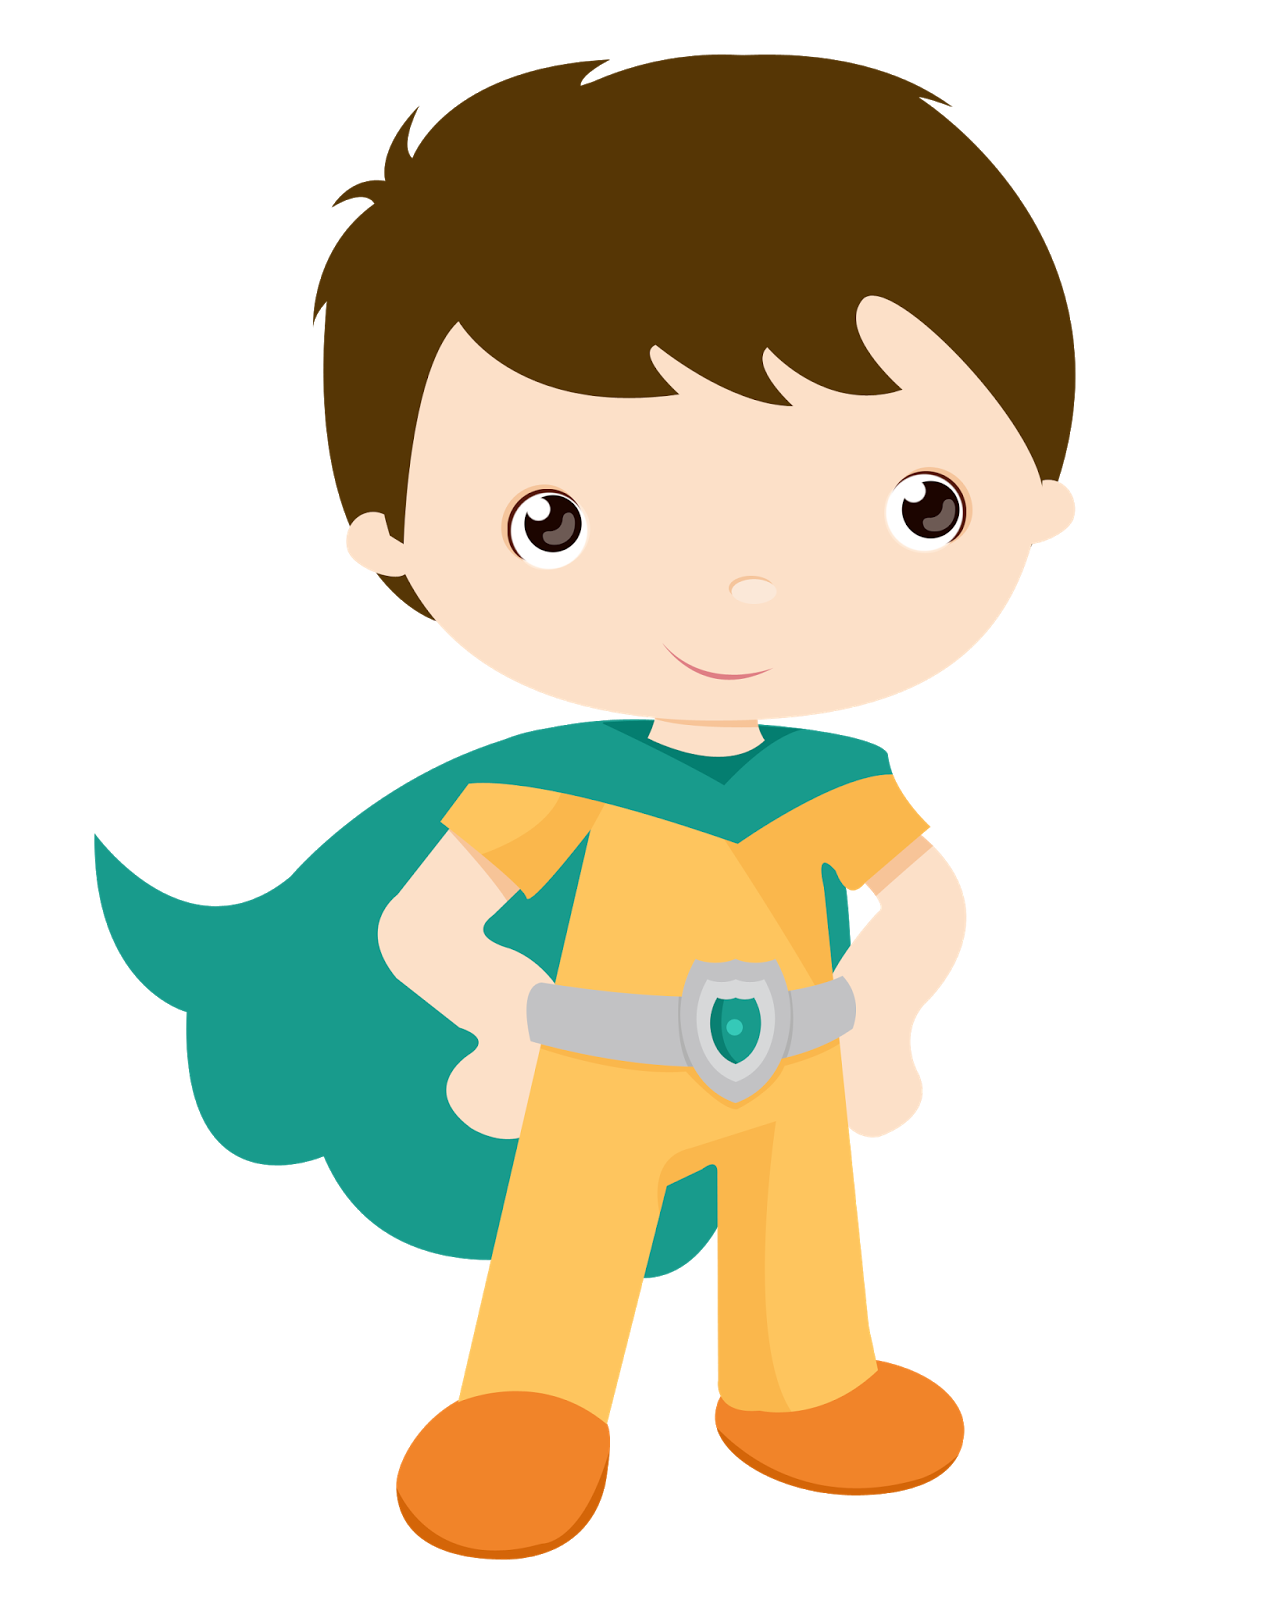 Chibi thanksgiving clipart svg free stock Aquaman Clipart at GetDrawings.com | Free for personal use Aquaman ... svg free stock